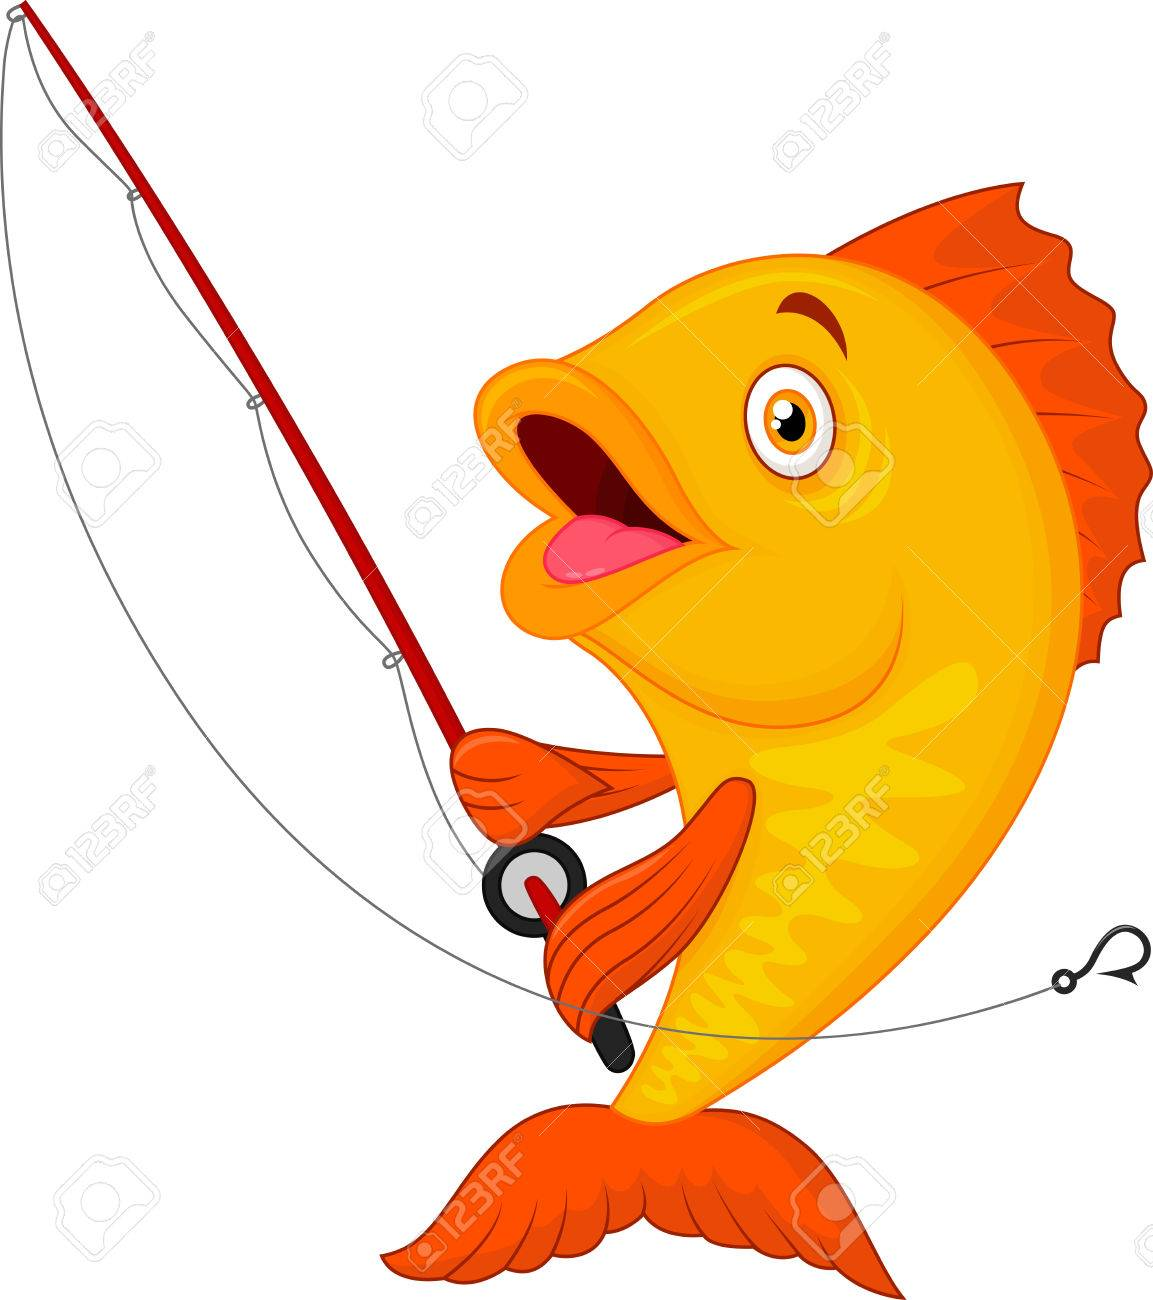 Cute Cartoon Fish Holding Fishing Rod Royalty Free Cliparts Vectors And Stock Illustration Image 27657236